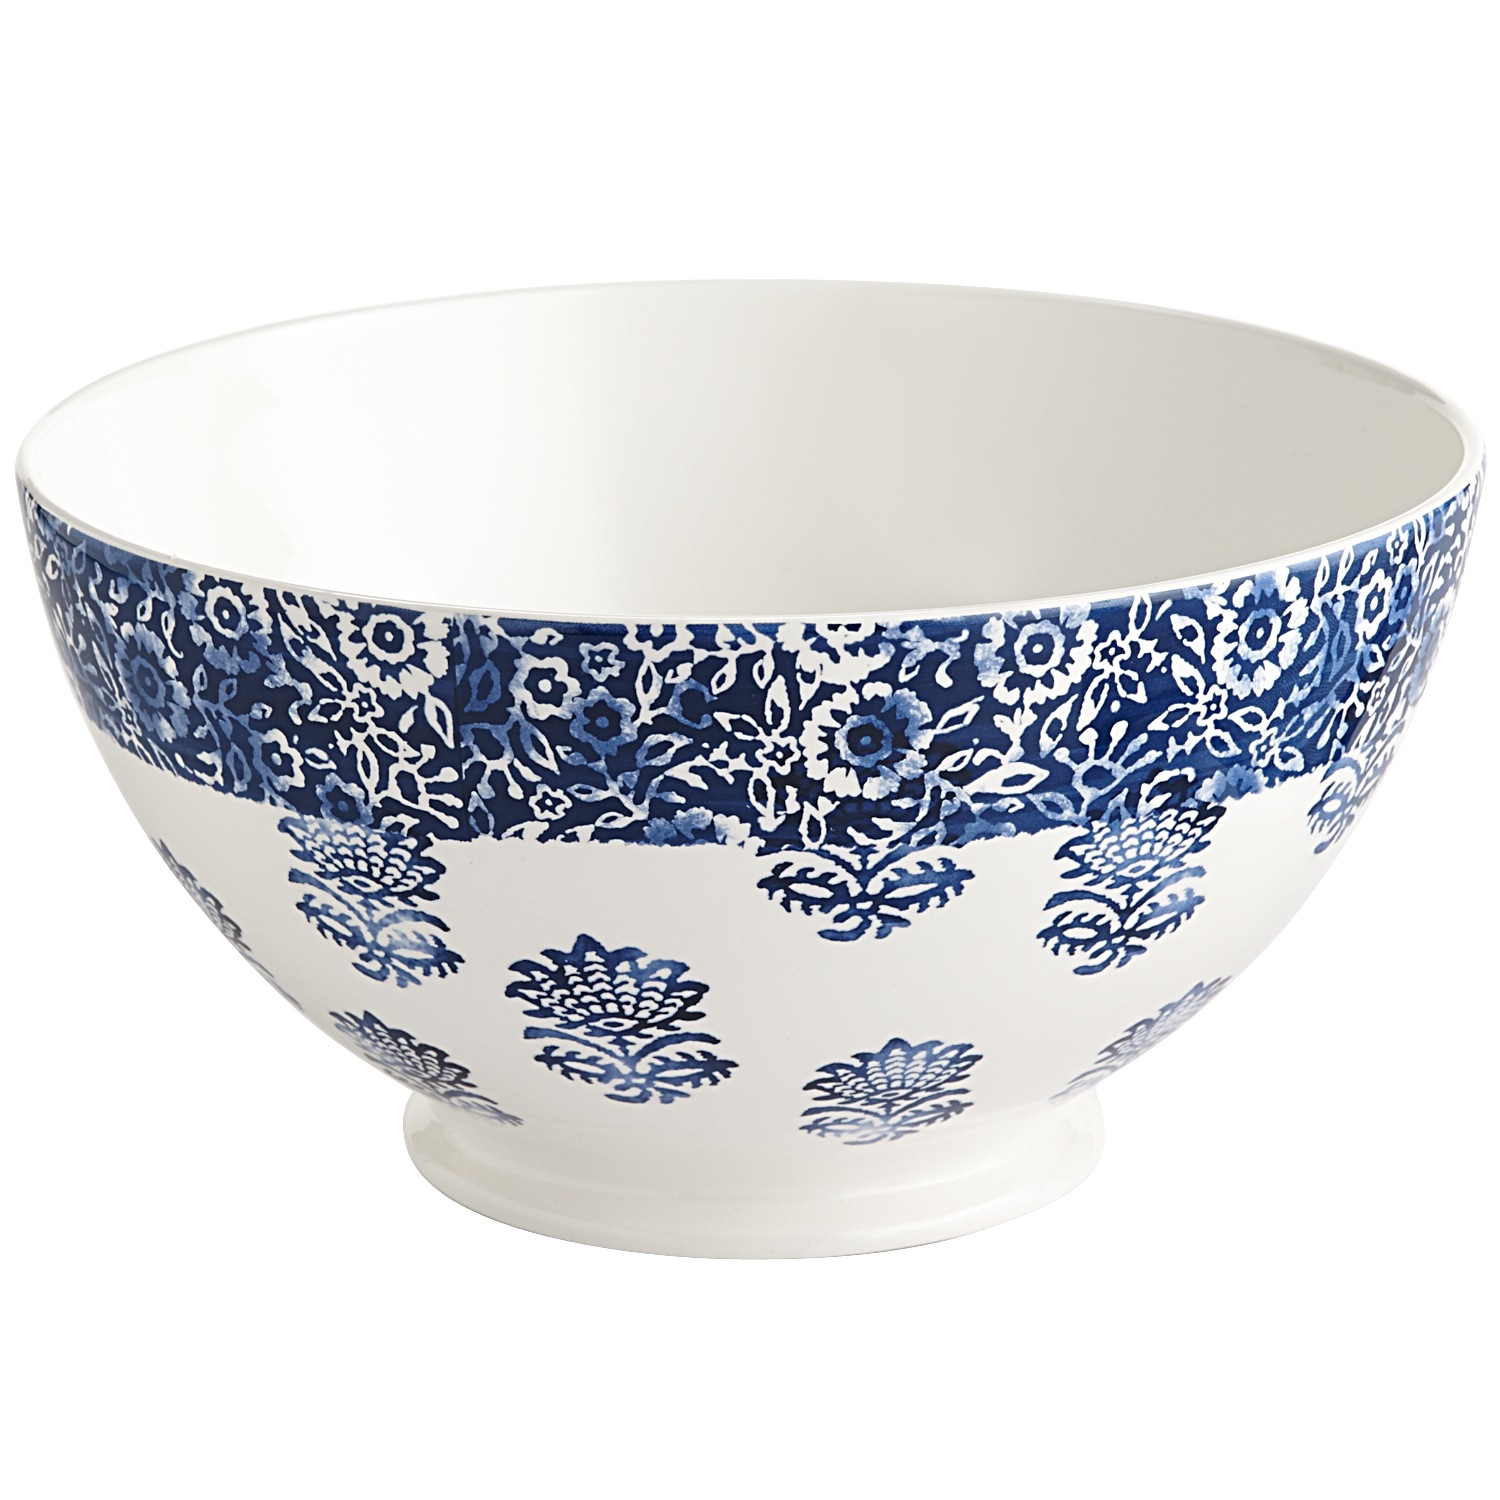 Gudari Serving Bowl